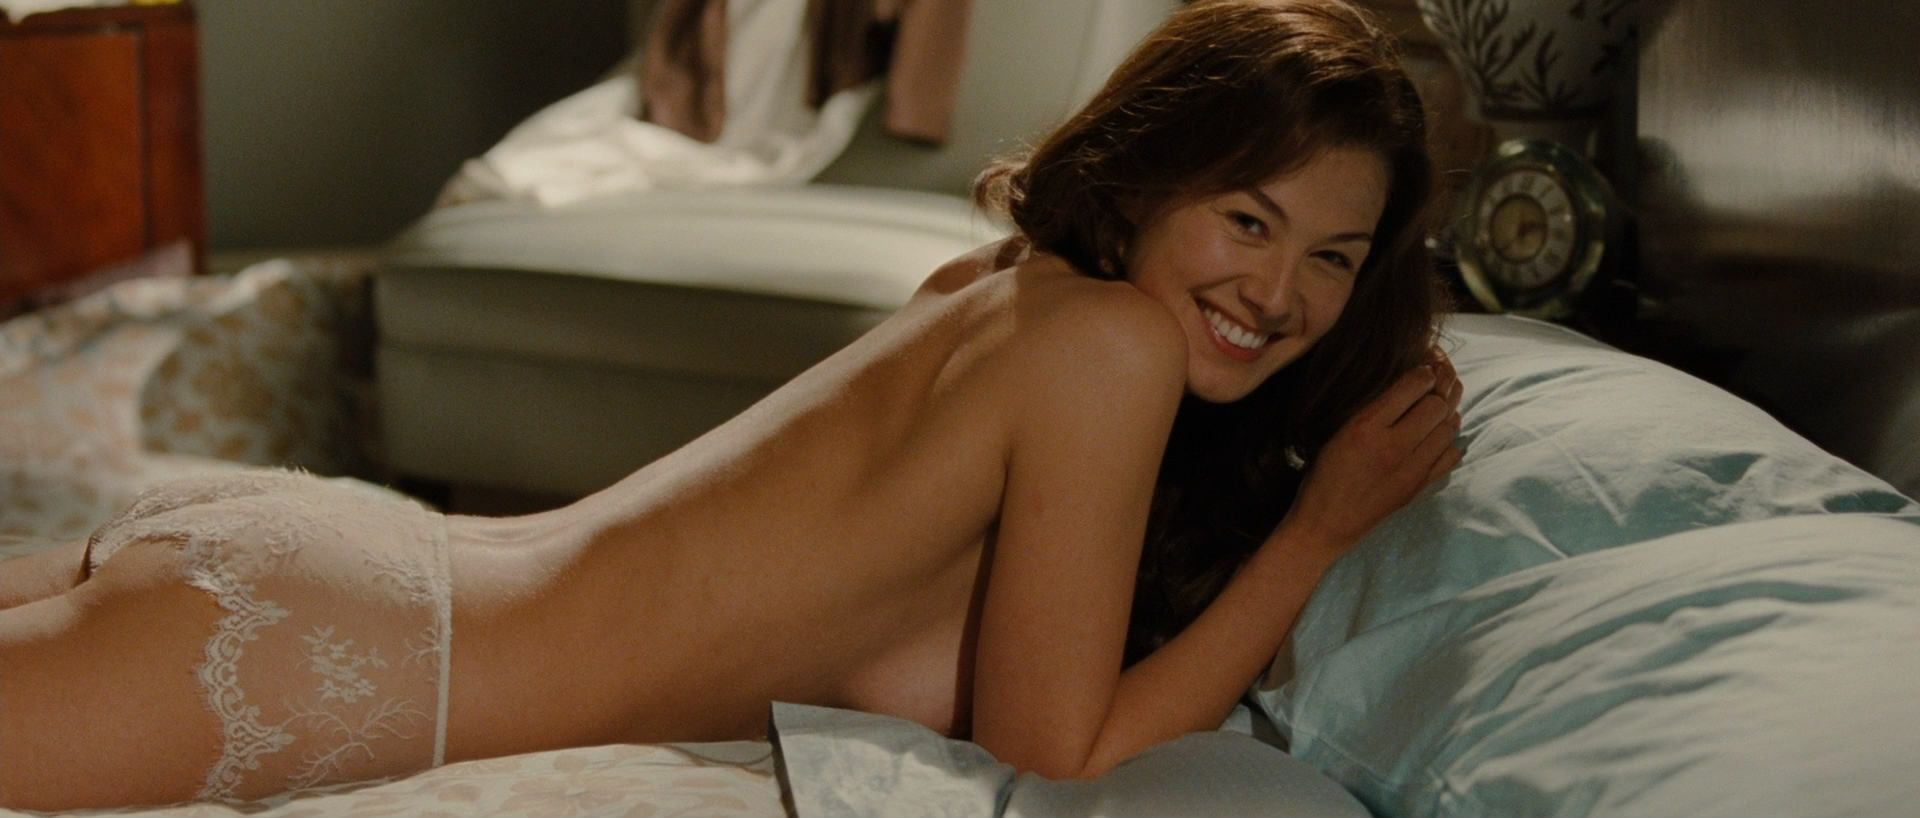 Rosamund pike nude movies-4530